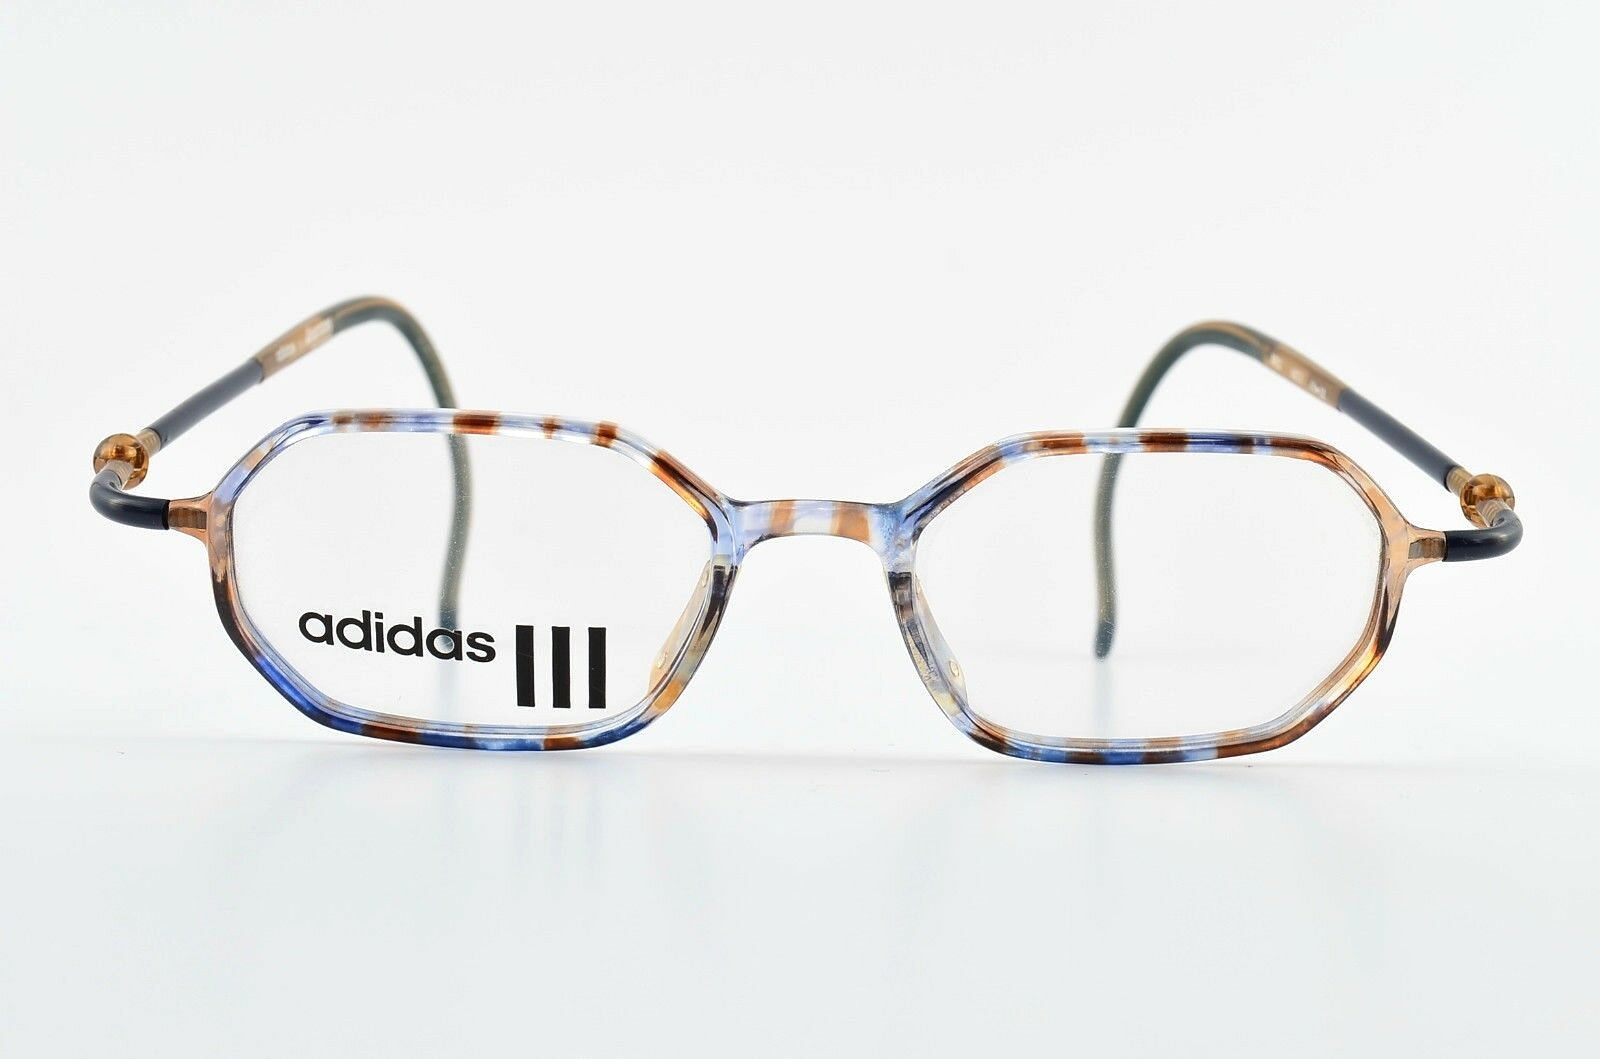 ADIDAS by MASTERS Vintage Brille Mod. A811 6053 Eyeglasses Lunettes ...